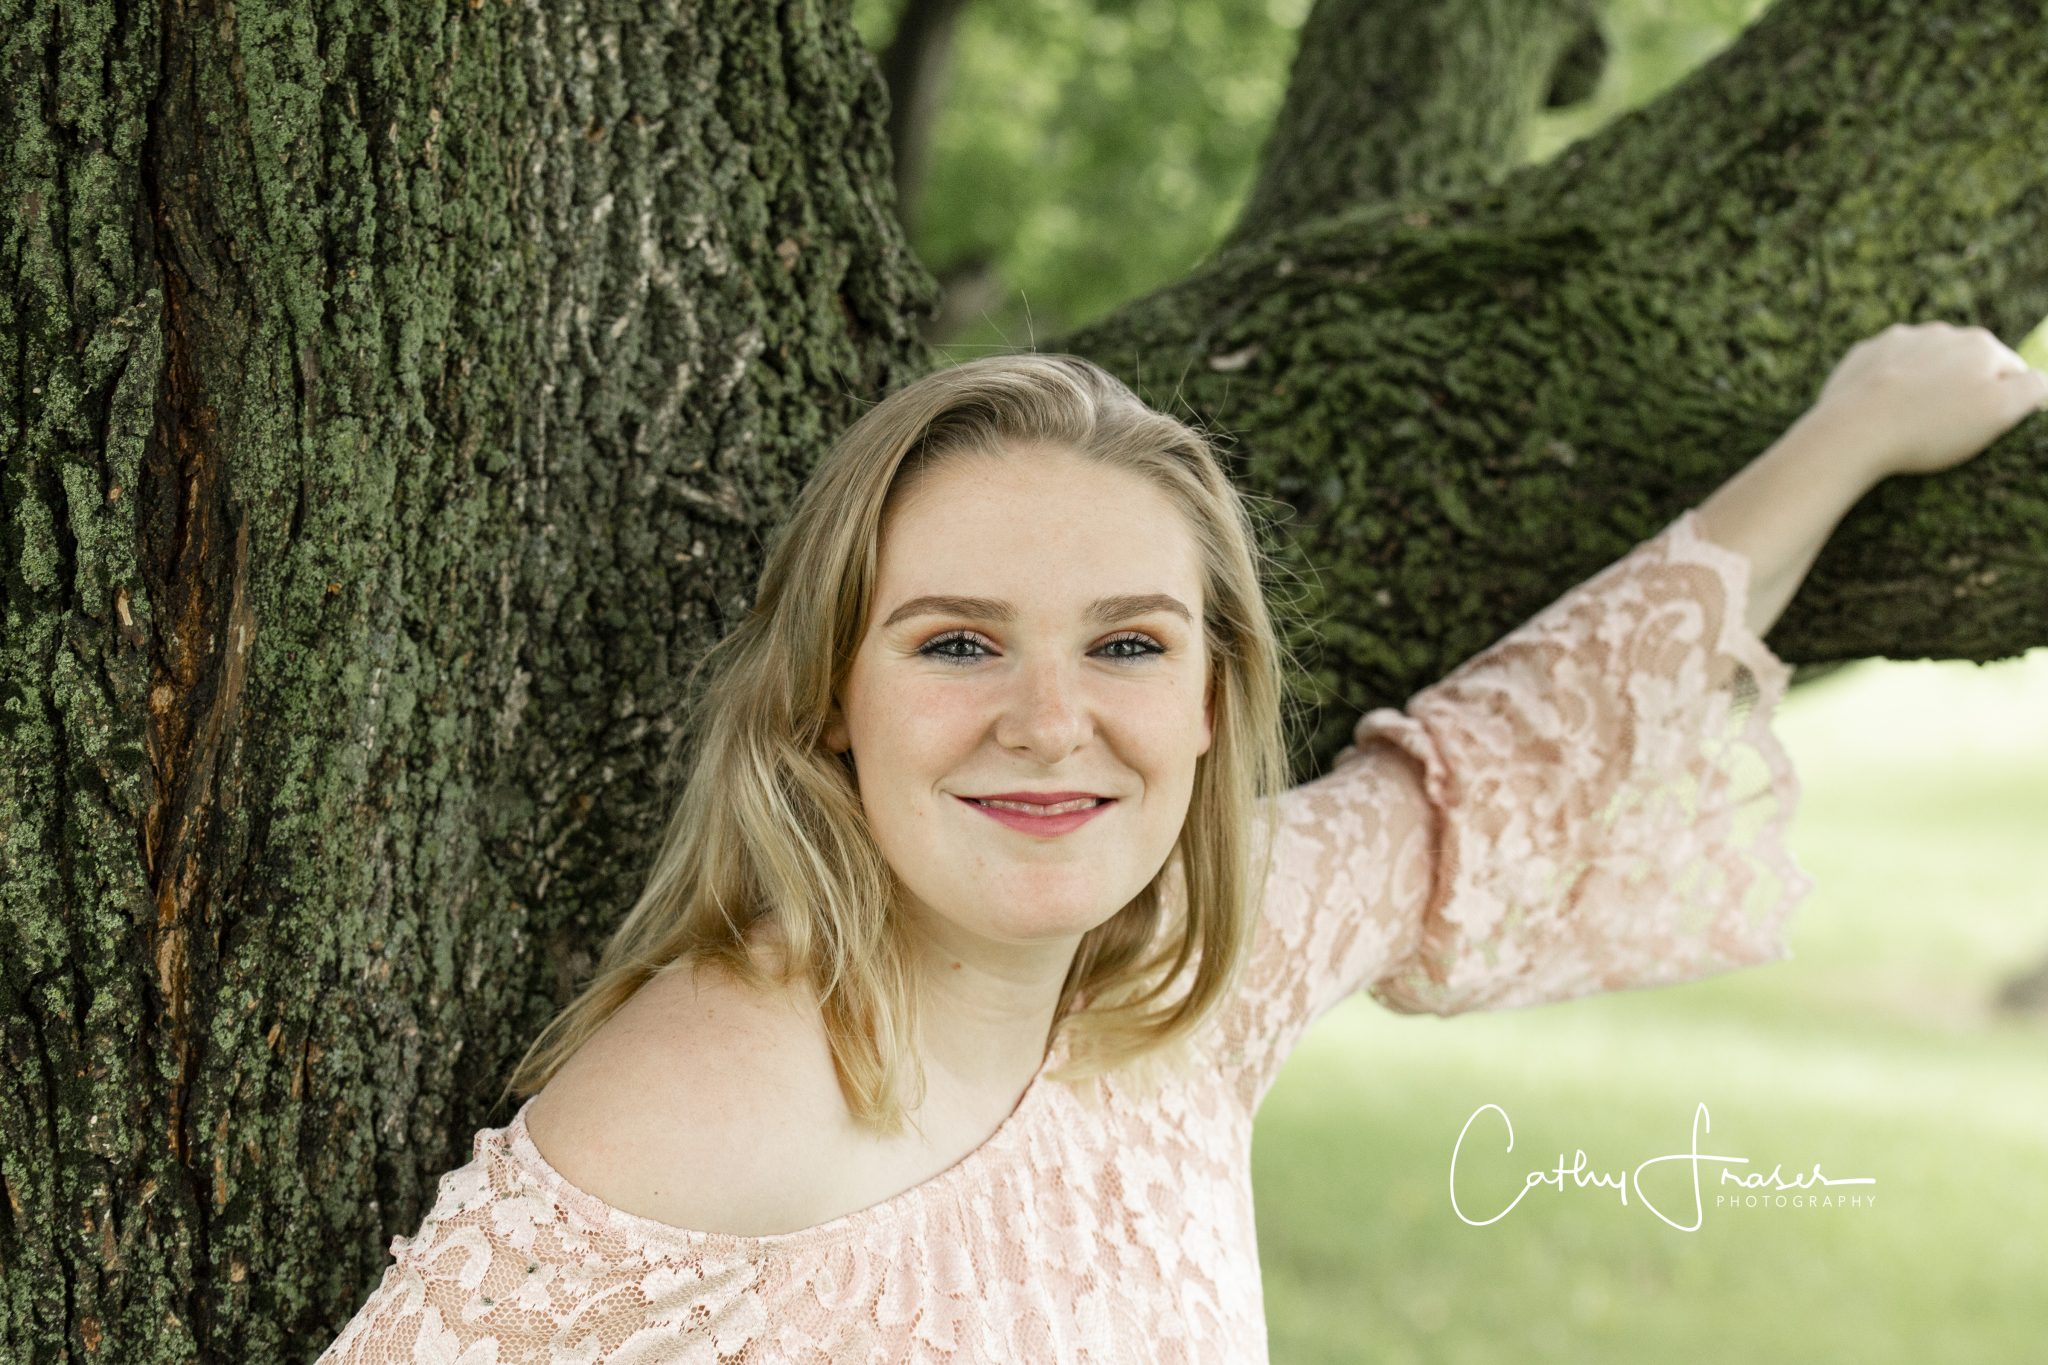 Senior pictures, professional senior pictures, portraits, head shots, Byron New York, senior session